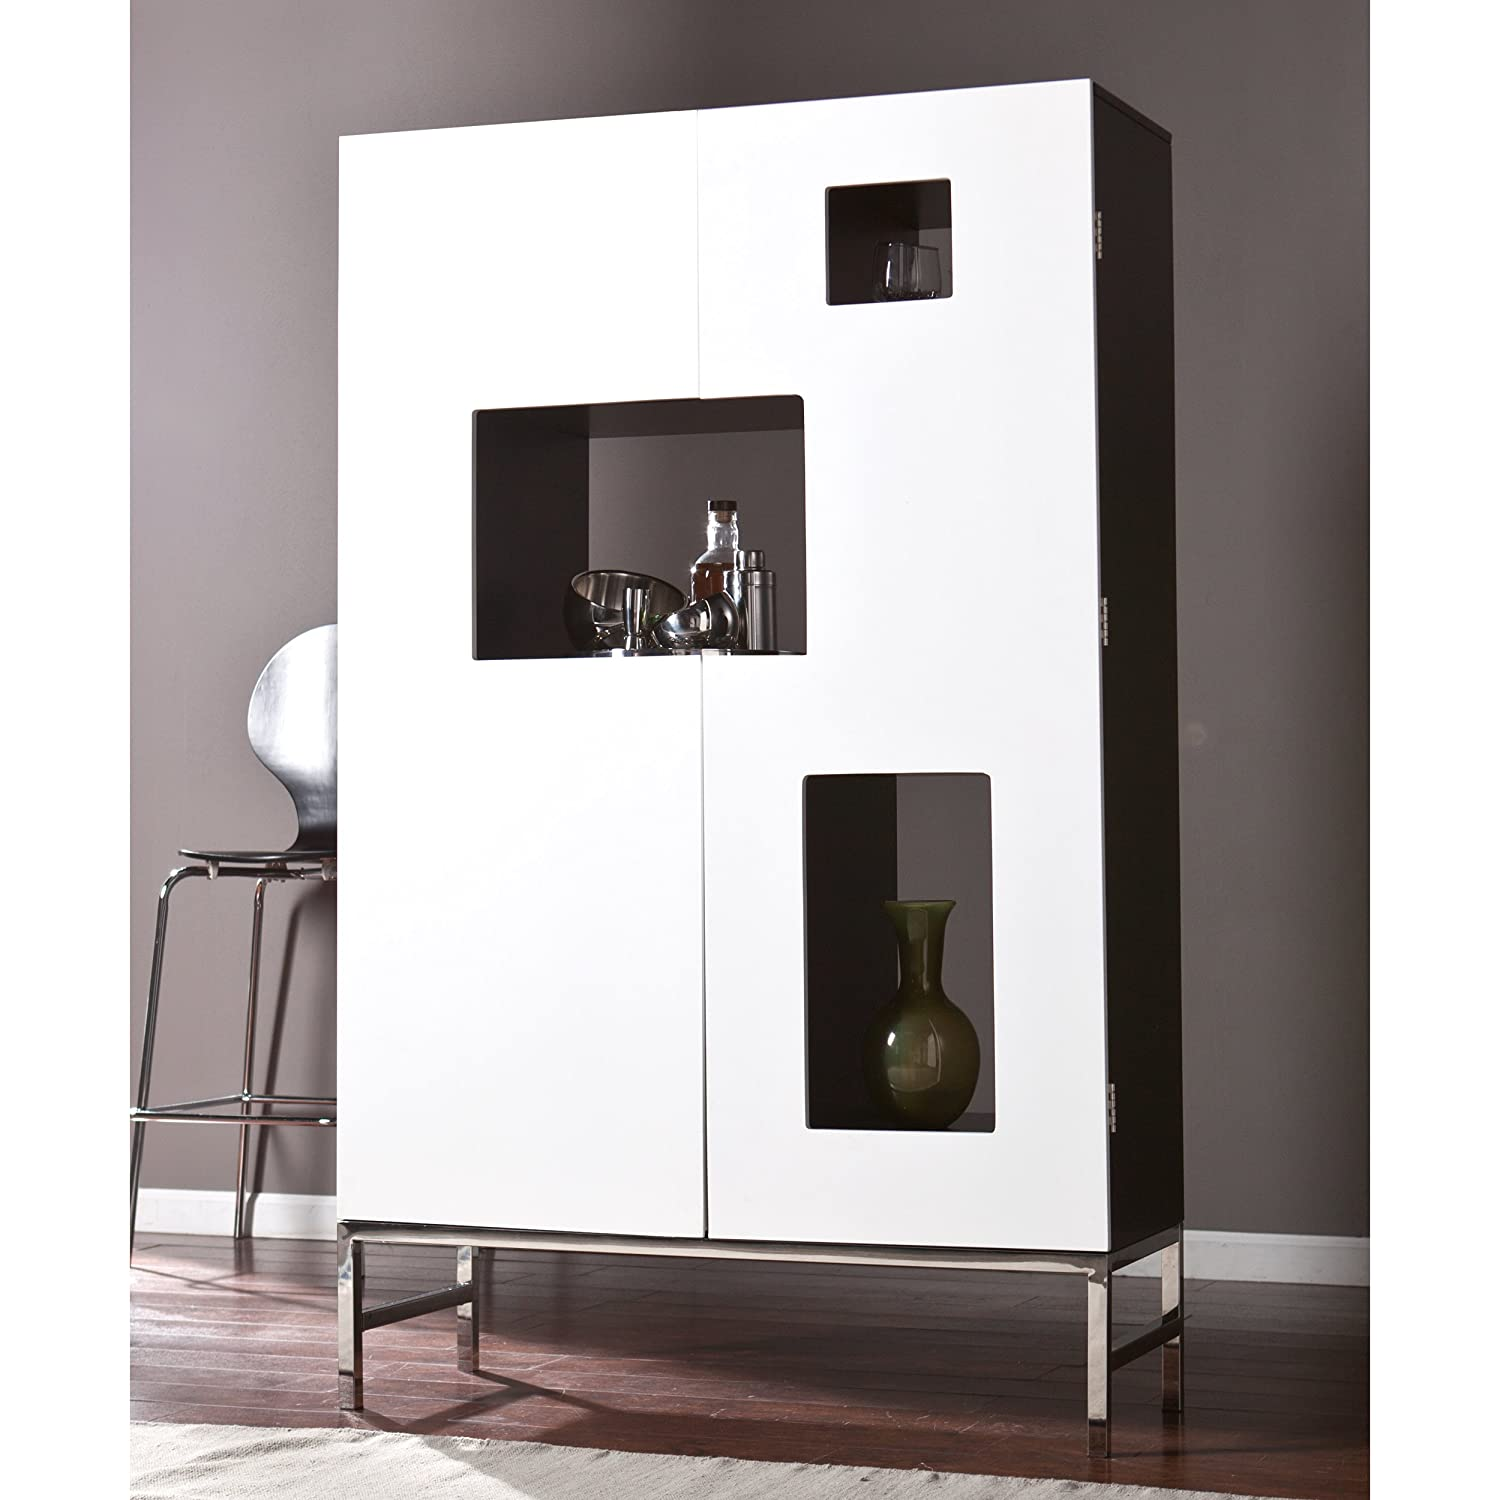 Delightful Amazon.com: Southern Enterprises Shadowbox Wine/Bar Cabinet, Black And  White Finish With Stainless Steel Legs